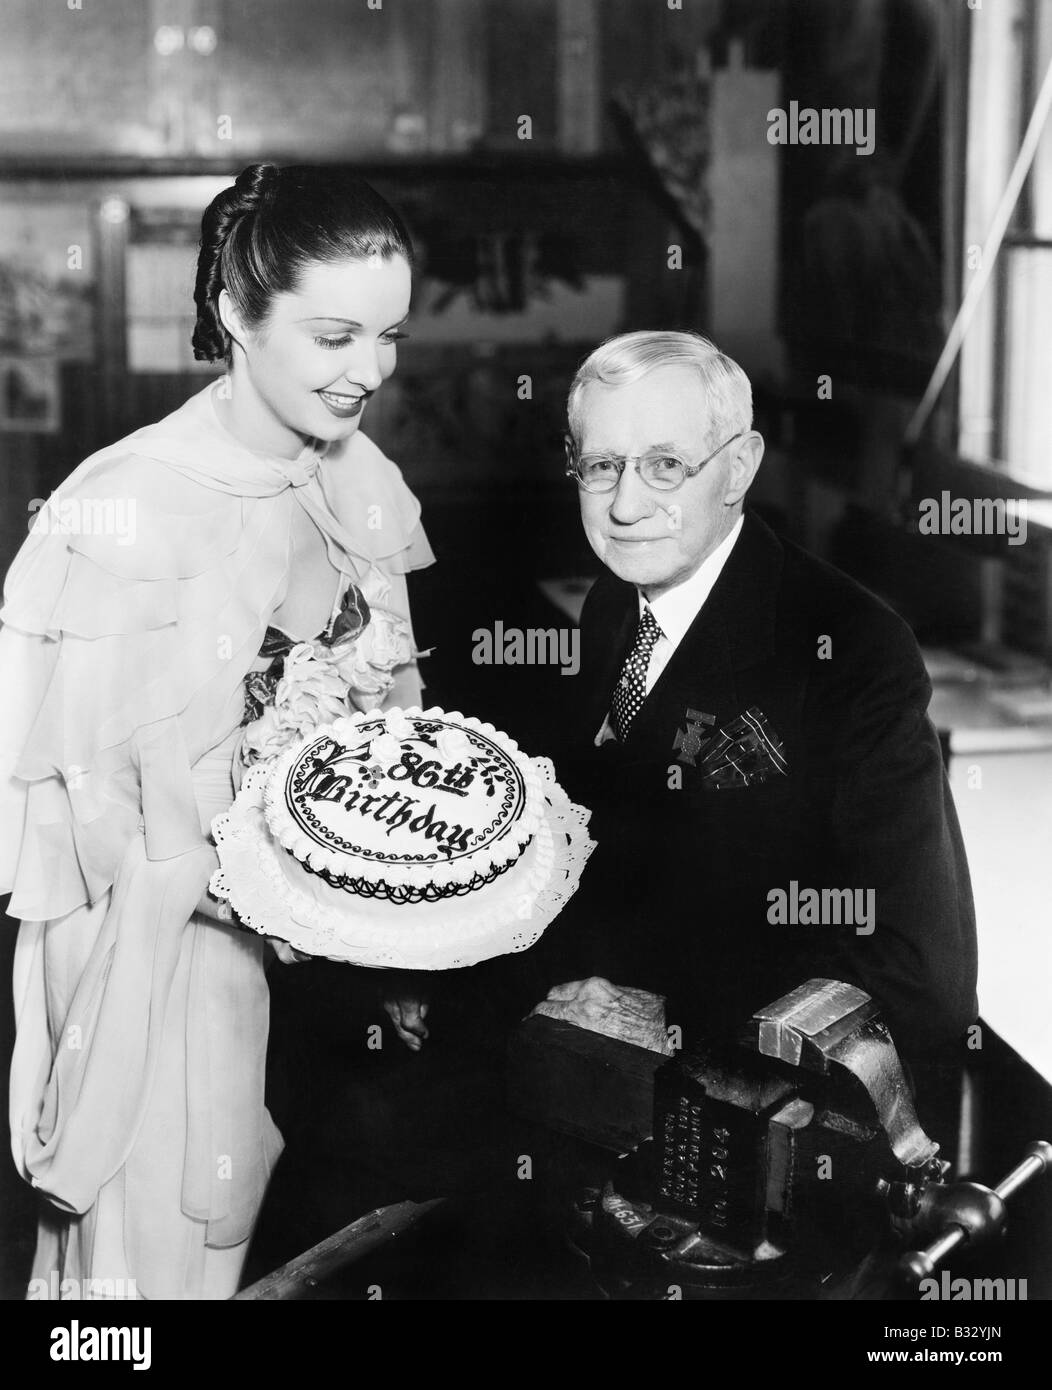 Young woman presenting a birthday cake to an elderly man - Stock Image